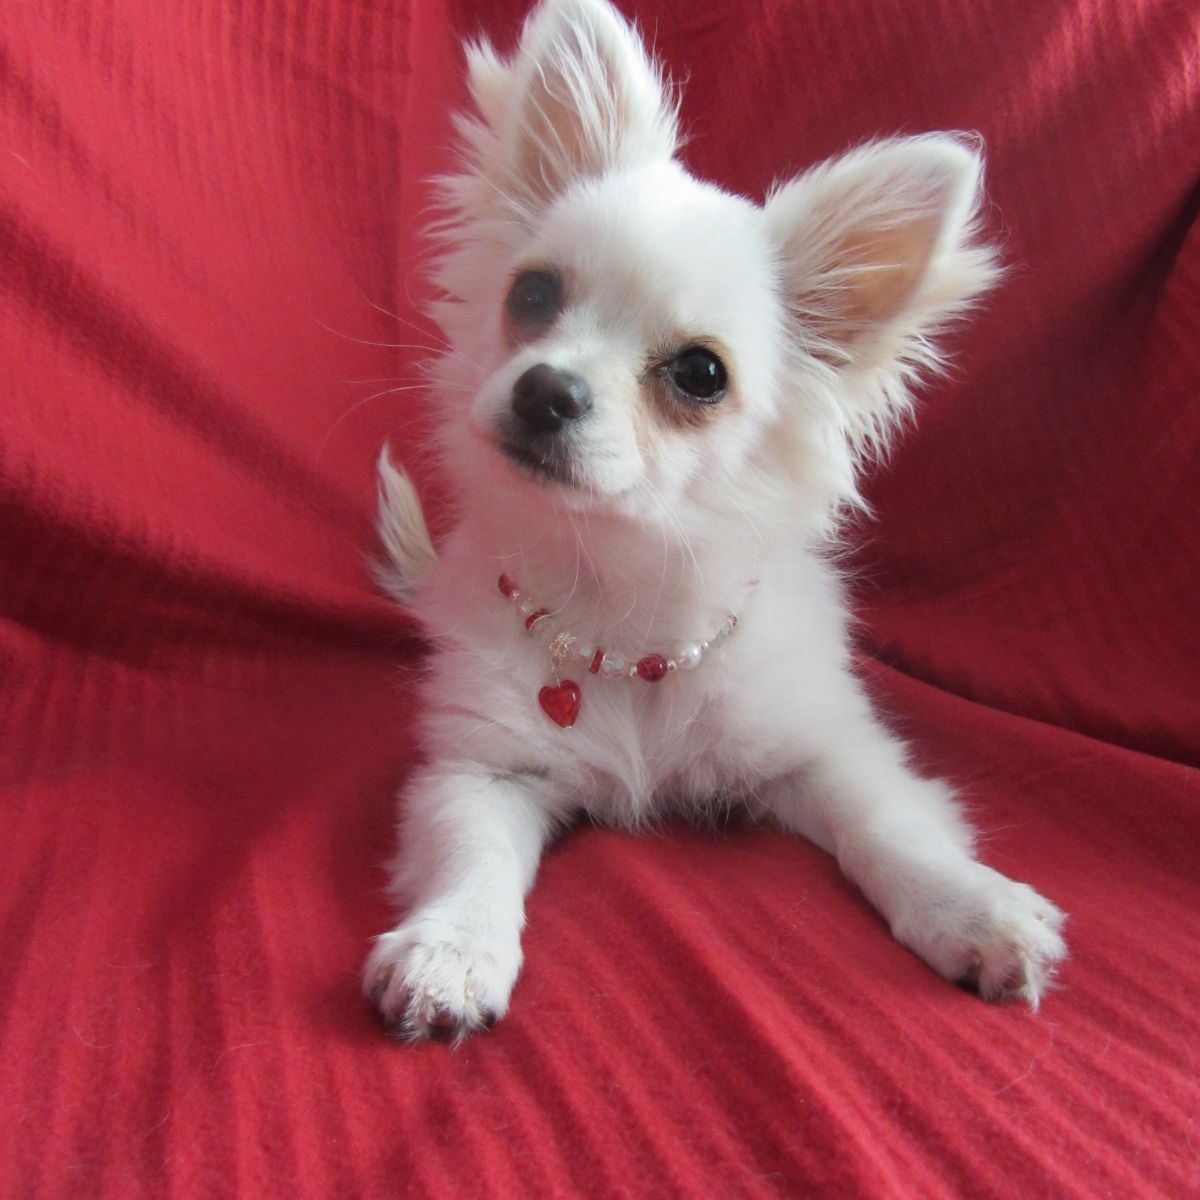 White Long Haired Chihuahua Kc White Long Coat Chihuahua Brierley Hill West Midlands Chihuahua Long Coat Chihuahua Cute Little Animals